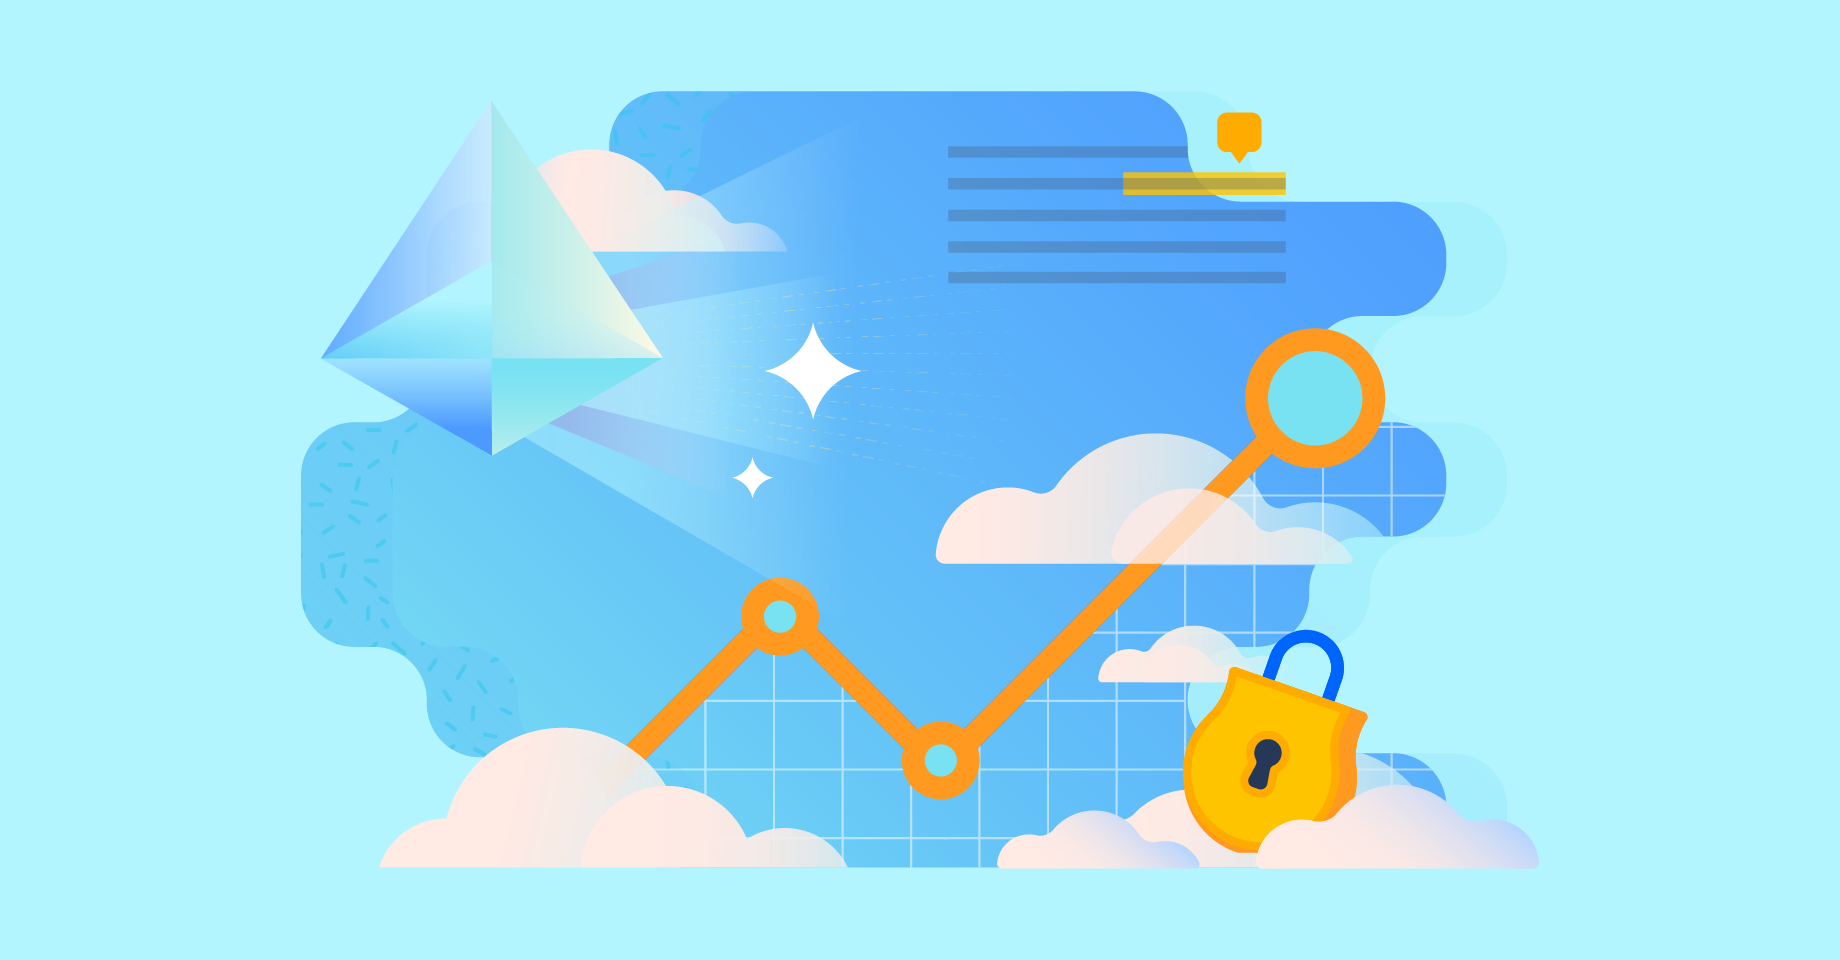 Atlassian Premium illustration